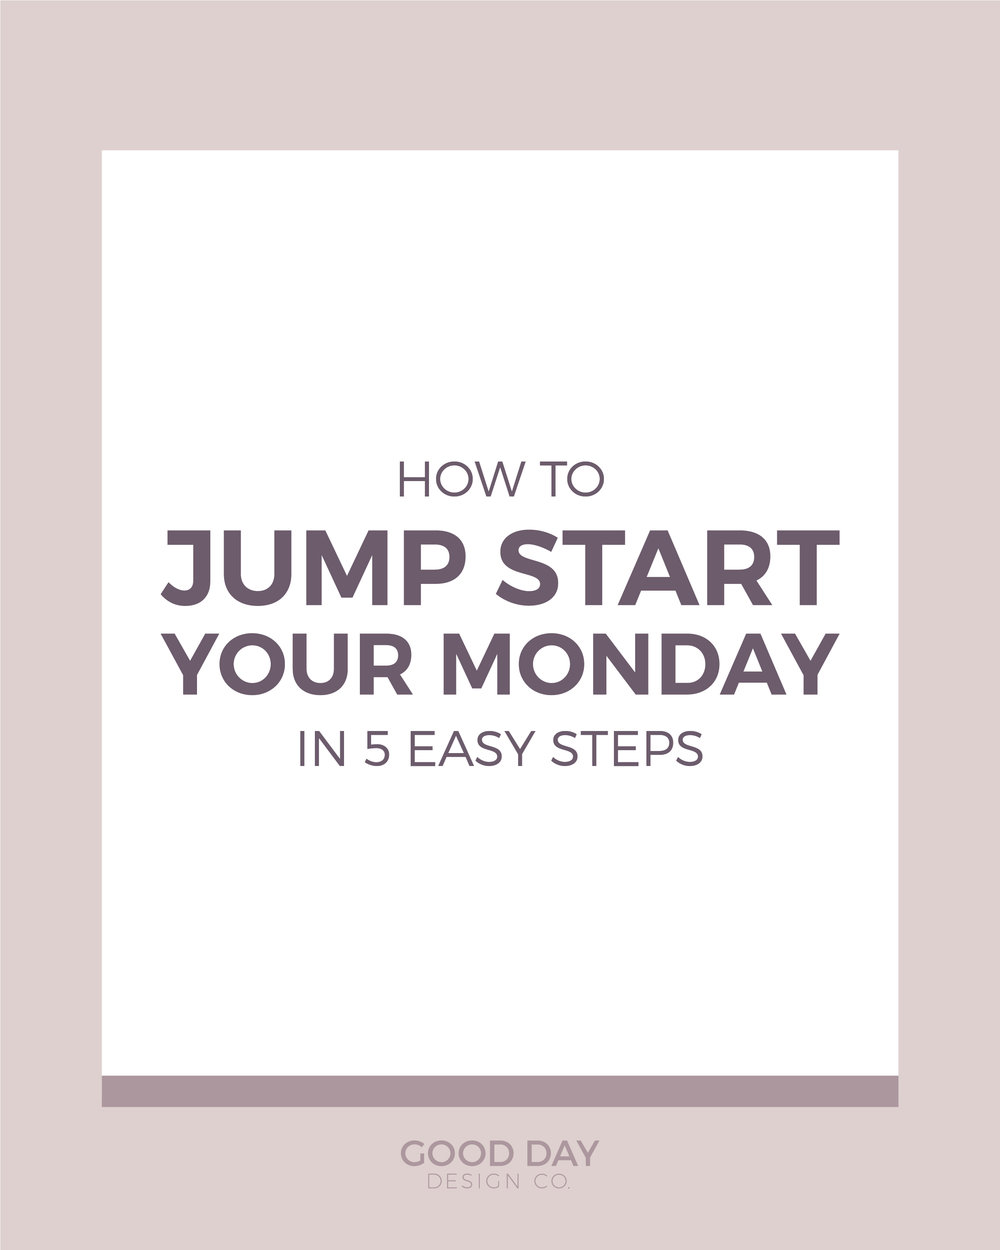 How to Jump Start Your Monday in 5 Easy Steps